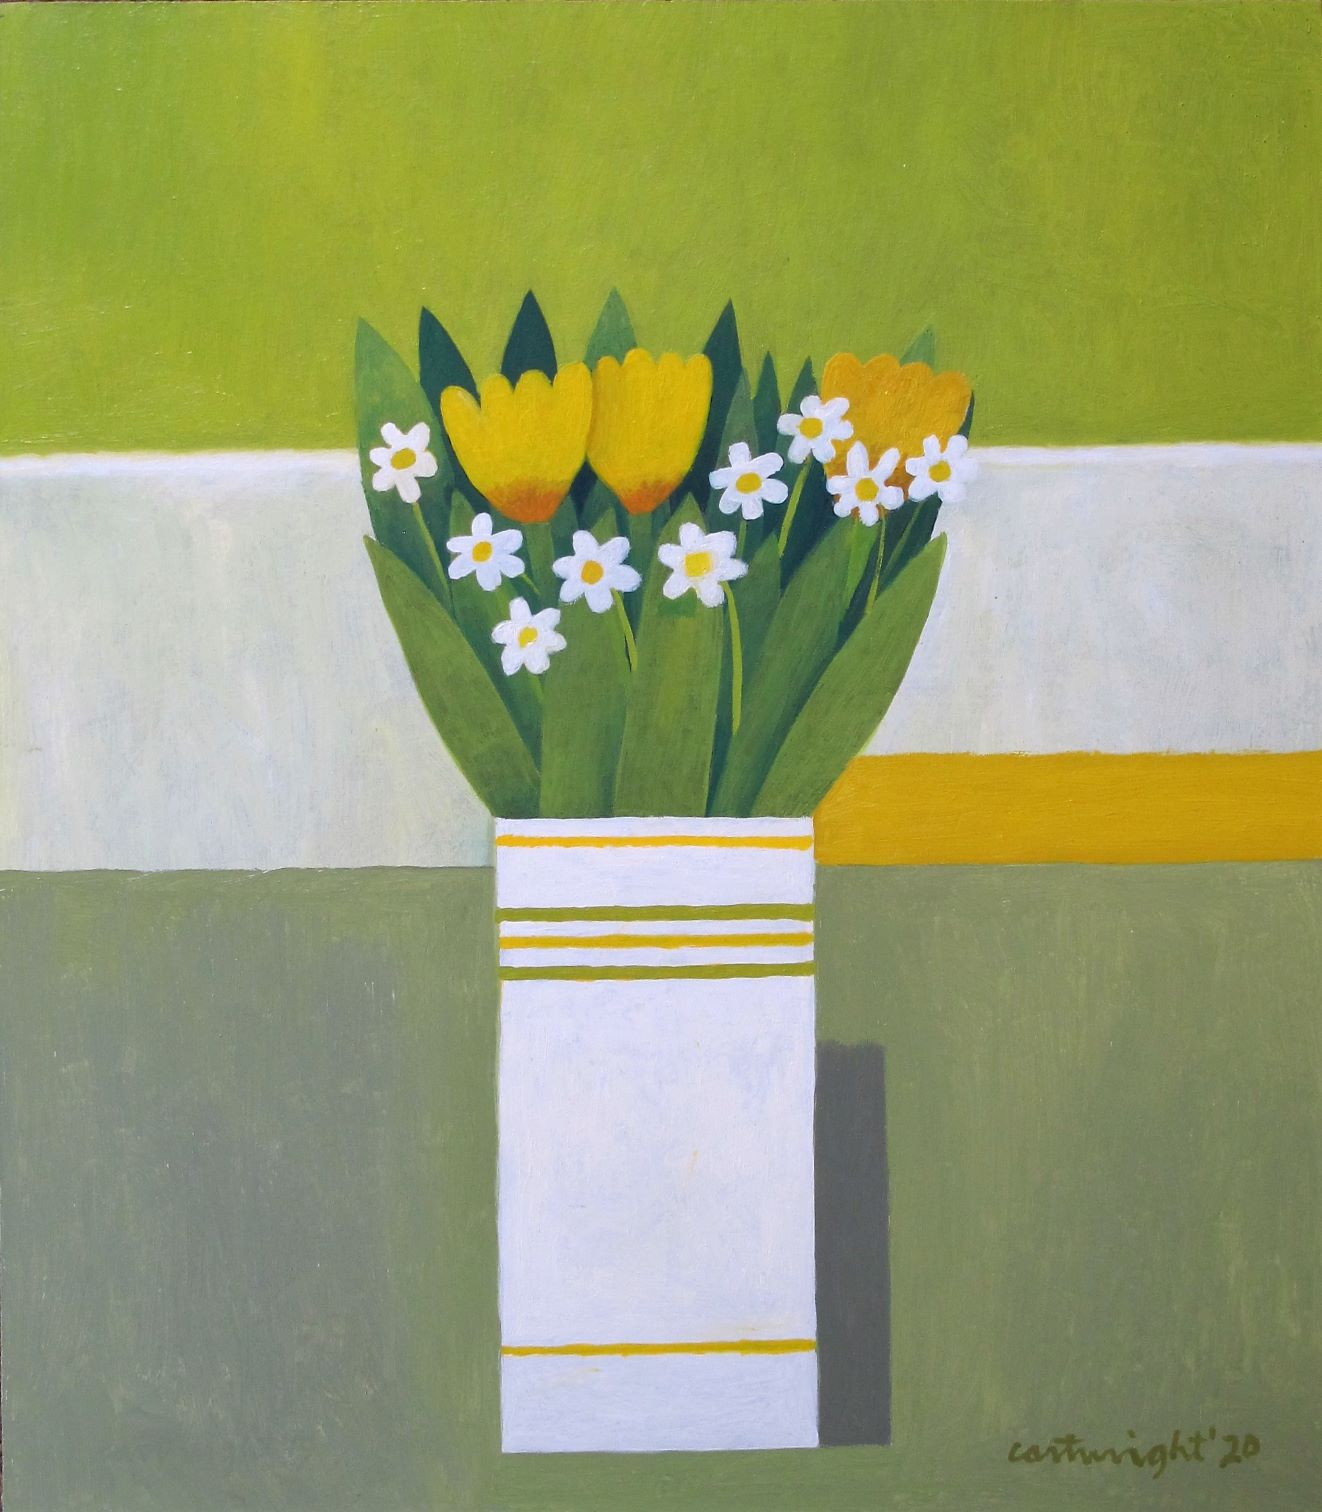 yellow and white flowers in a vase against green white grey yellow backdrop. Painted by Reg Cartwright 2020